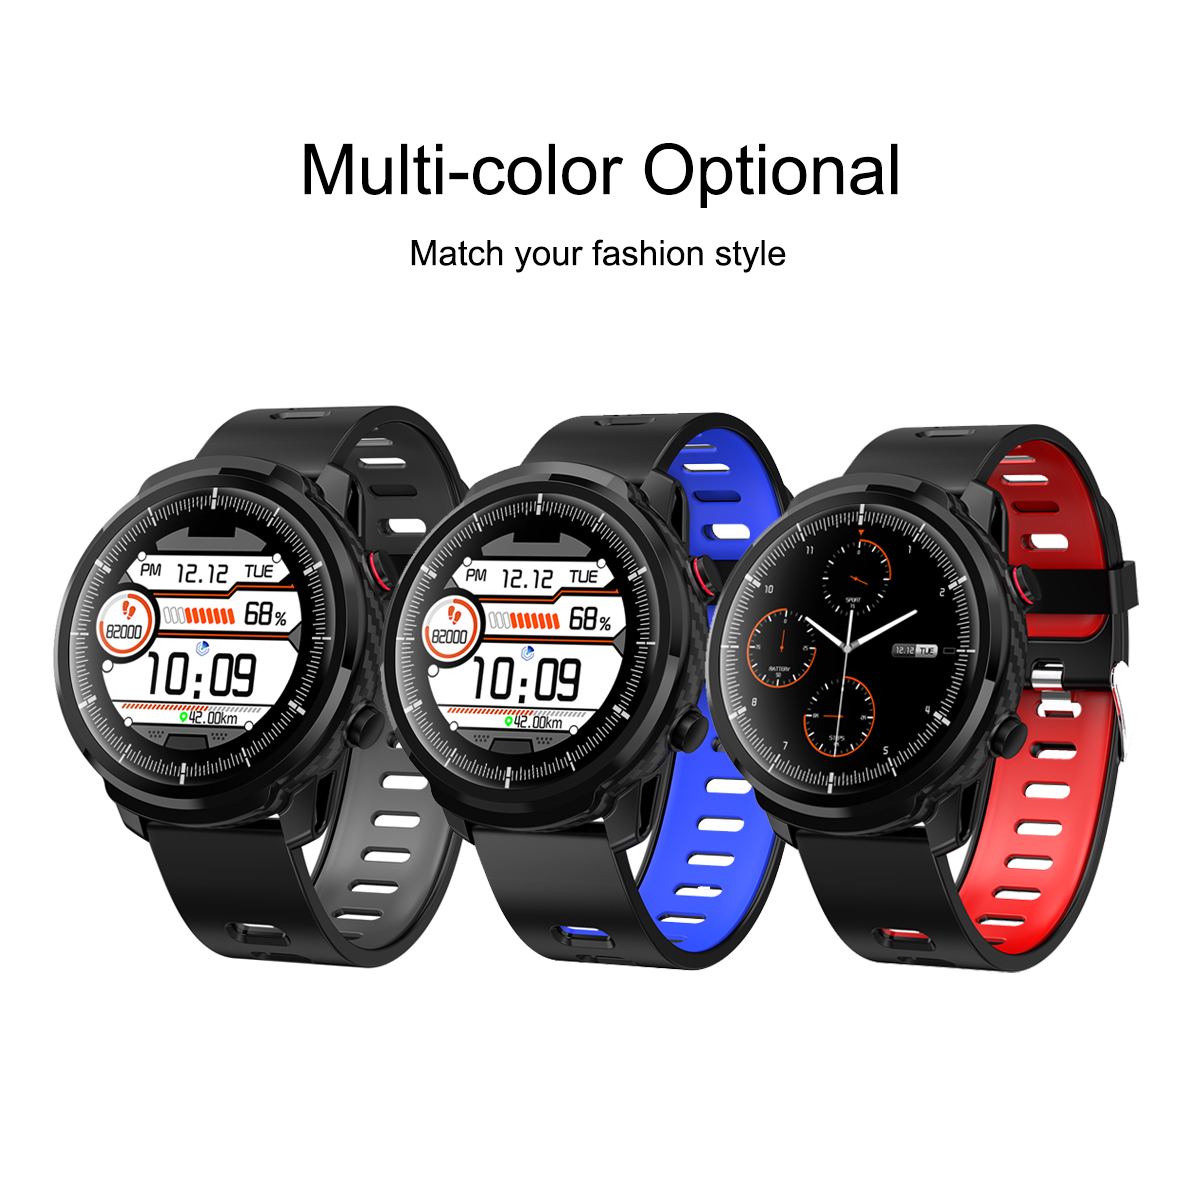 Smart watch fitness S10 touch full, water resistant, heart rate monitor for Android IOS Multi Color